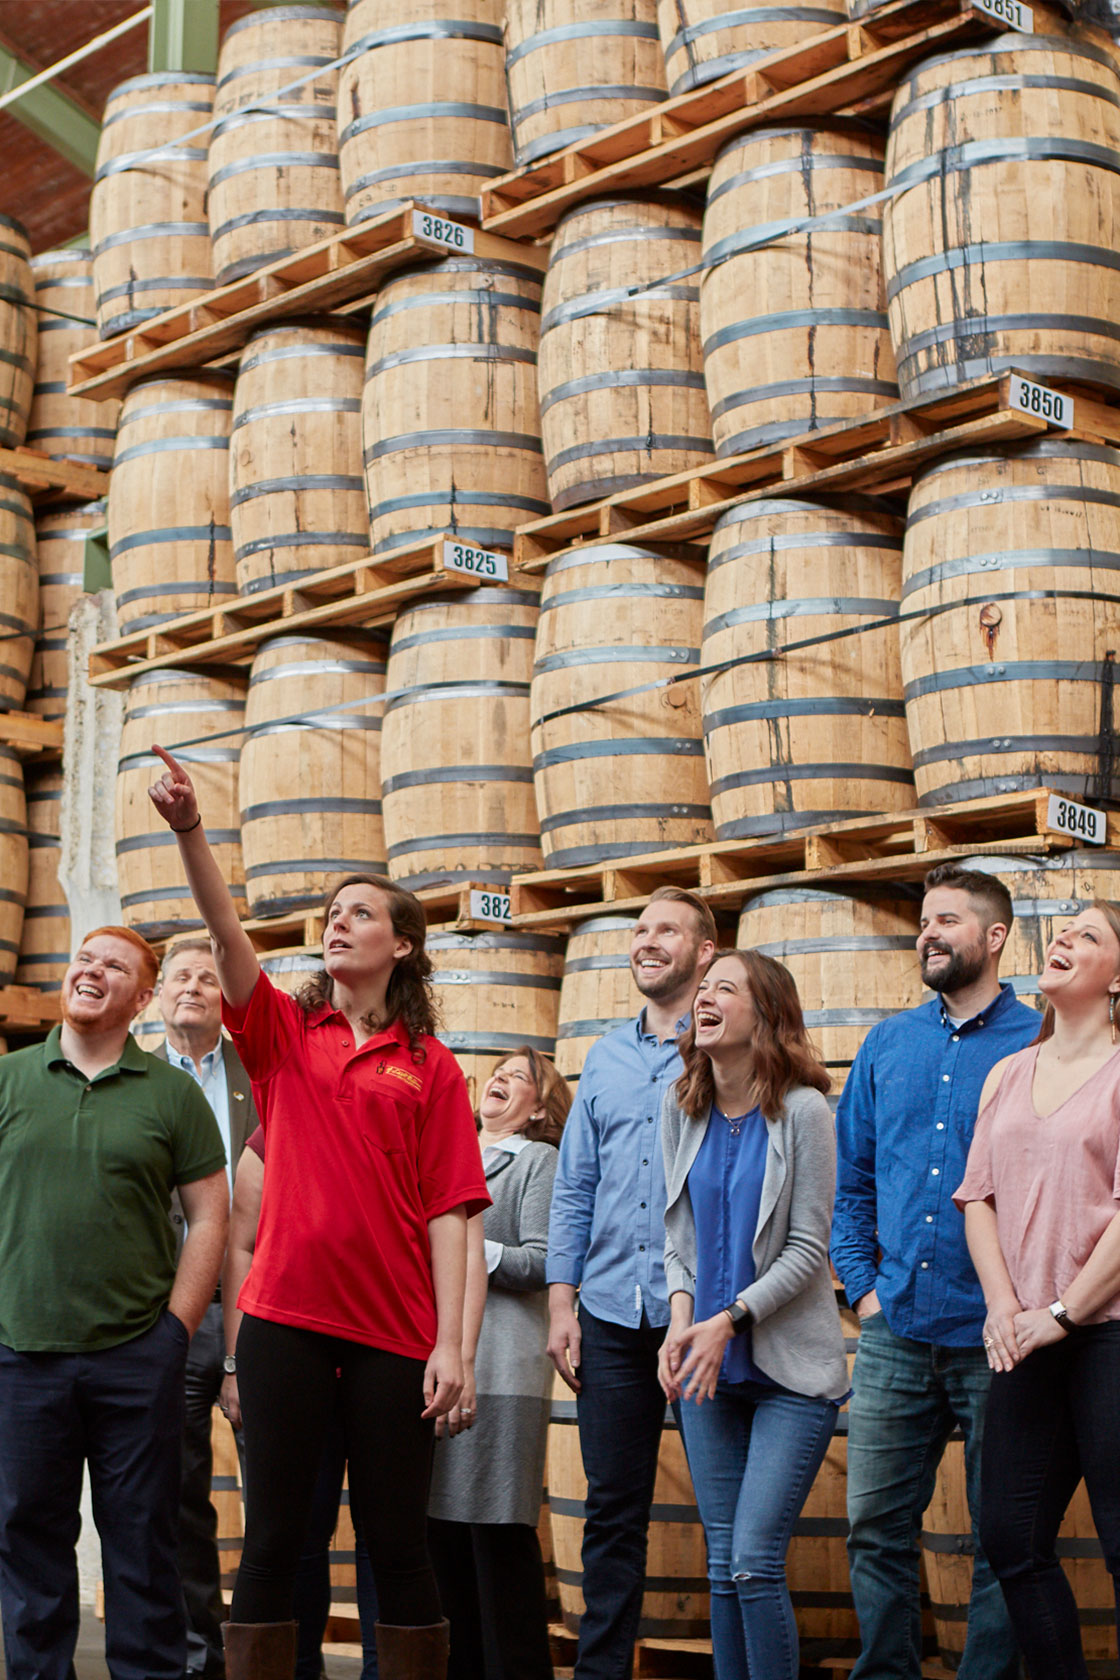 Tour group with tour guide pointing out a feature of the distillery